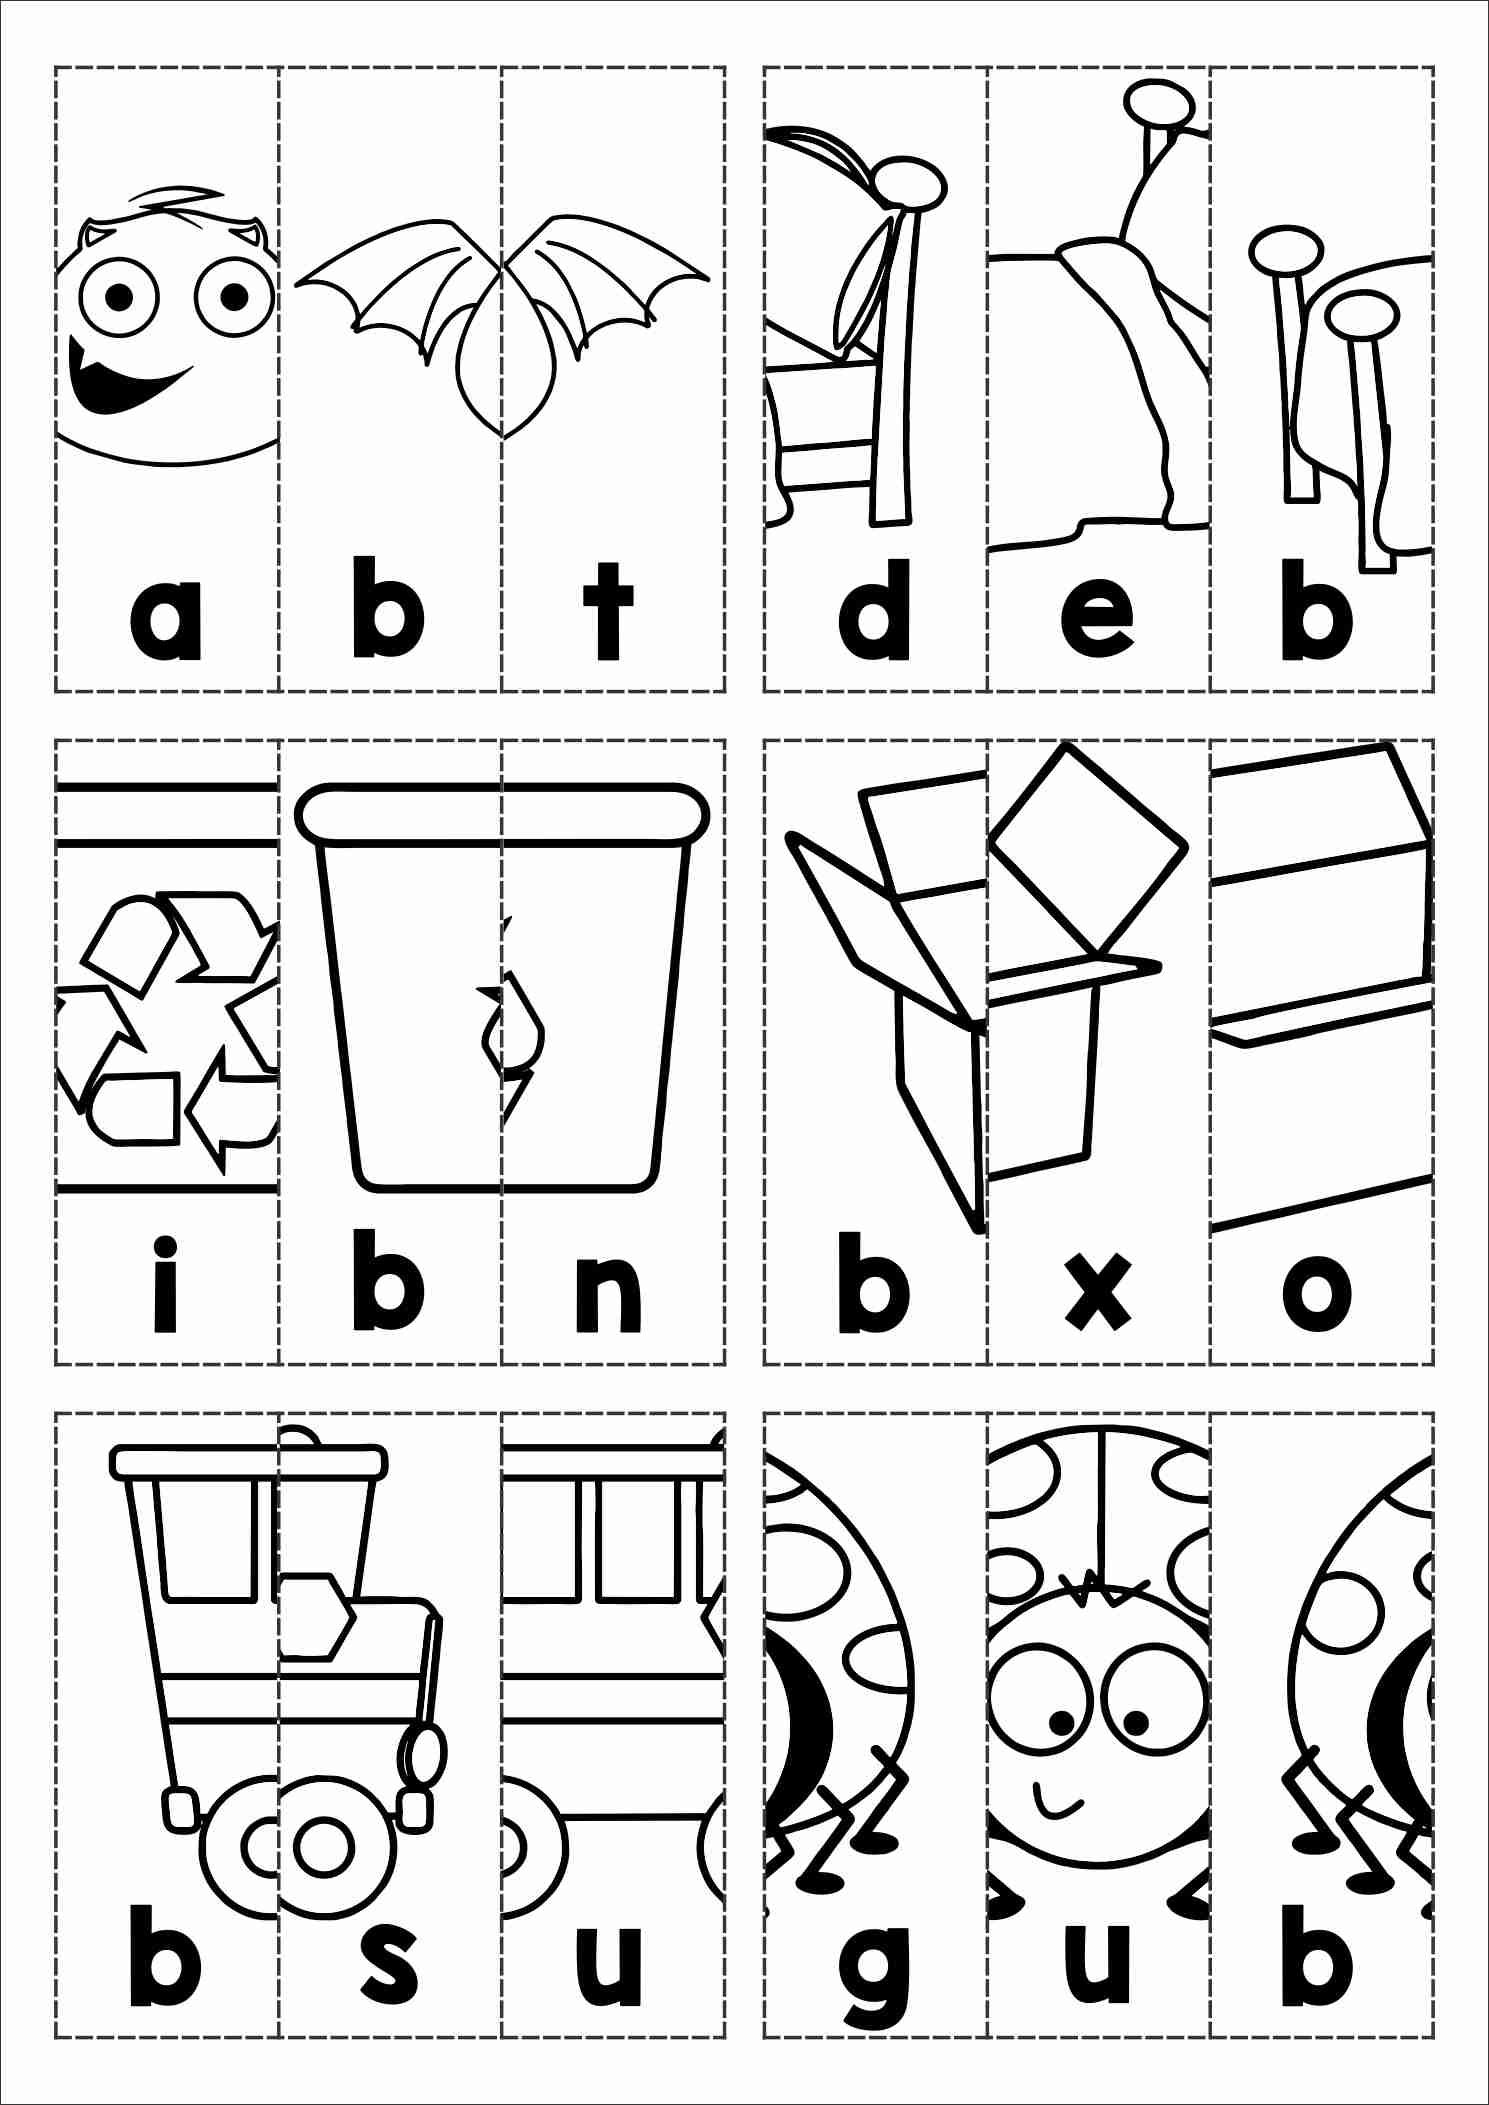 Car Cut Out Printable Worksheet